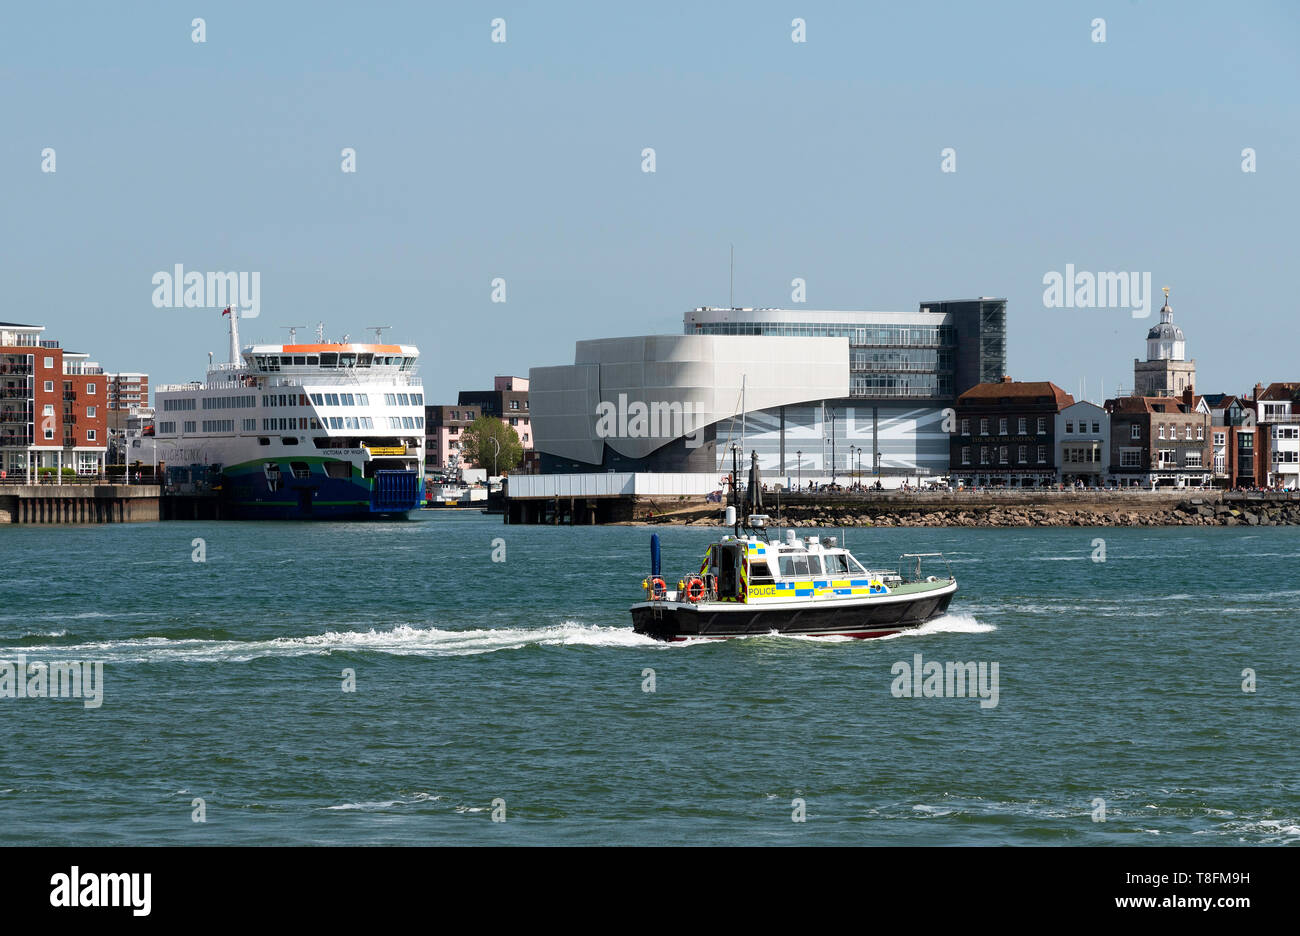 Portsmouth Harbour, England, UK. May 2019. The roro ferry Victoria of Wight passing the Ben Ainslie Racing HQ building. Police boat passing by. Stock Photo